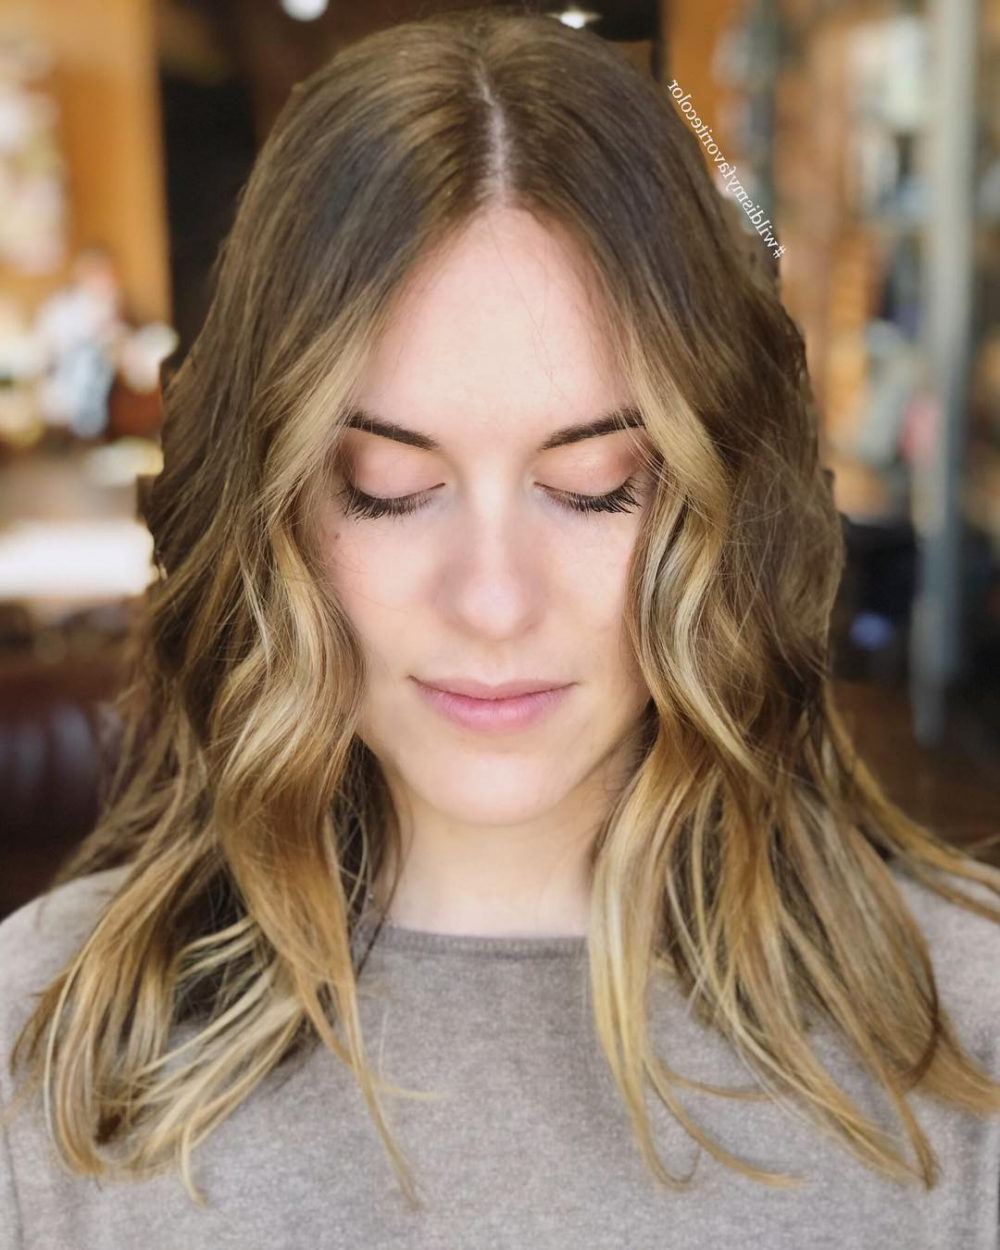 17 Flattering Medium Hairstyles For Round Faces In 2019 With Most Up To Date Medium Haircuts For Women With Round Faces (View 1 of 20)